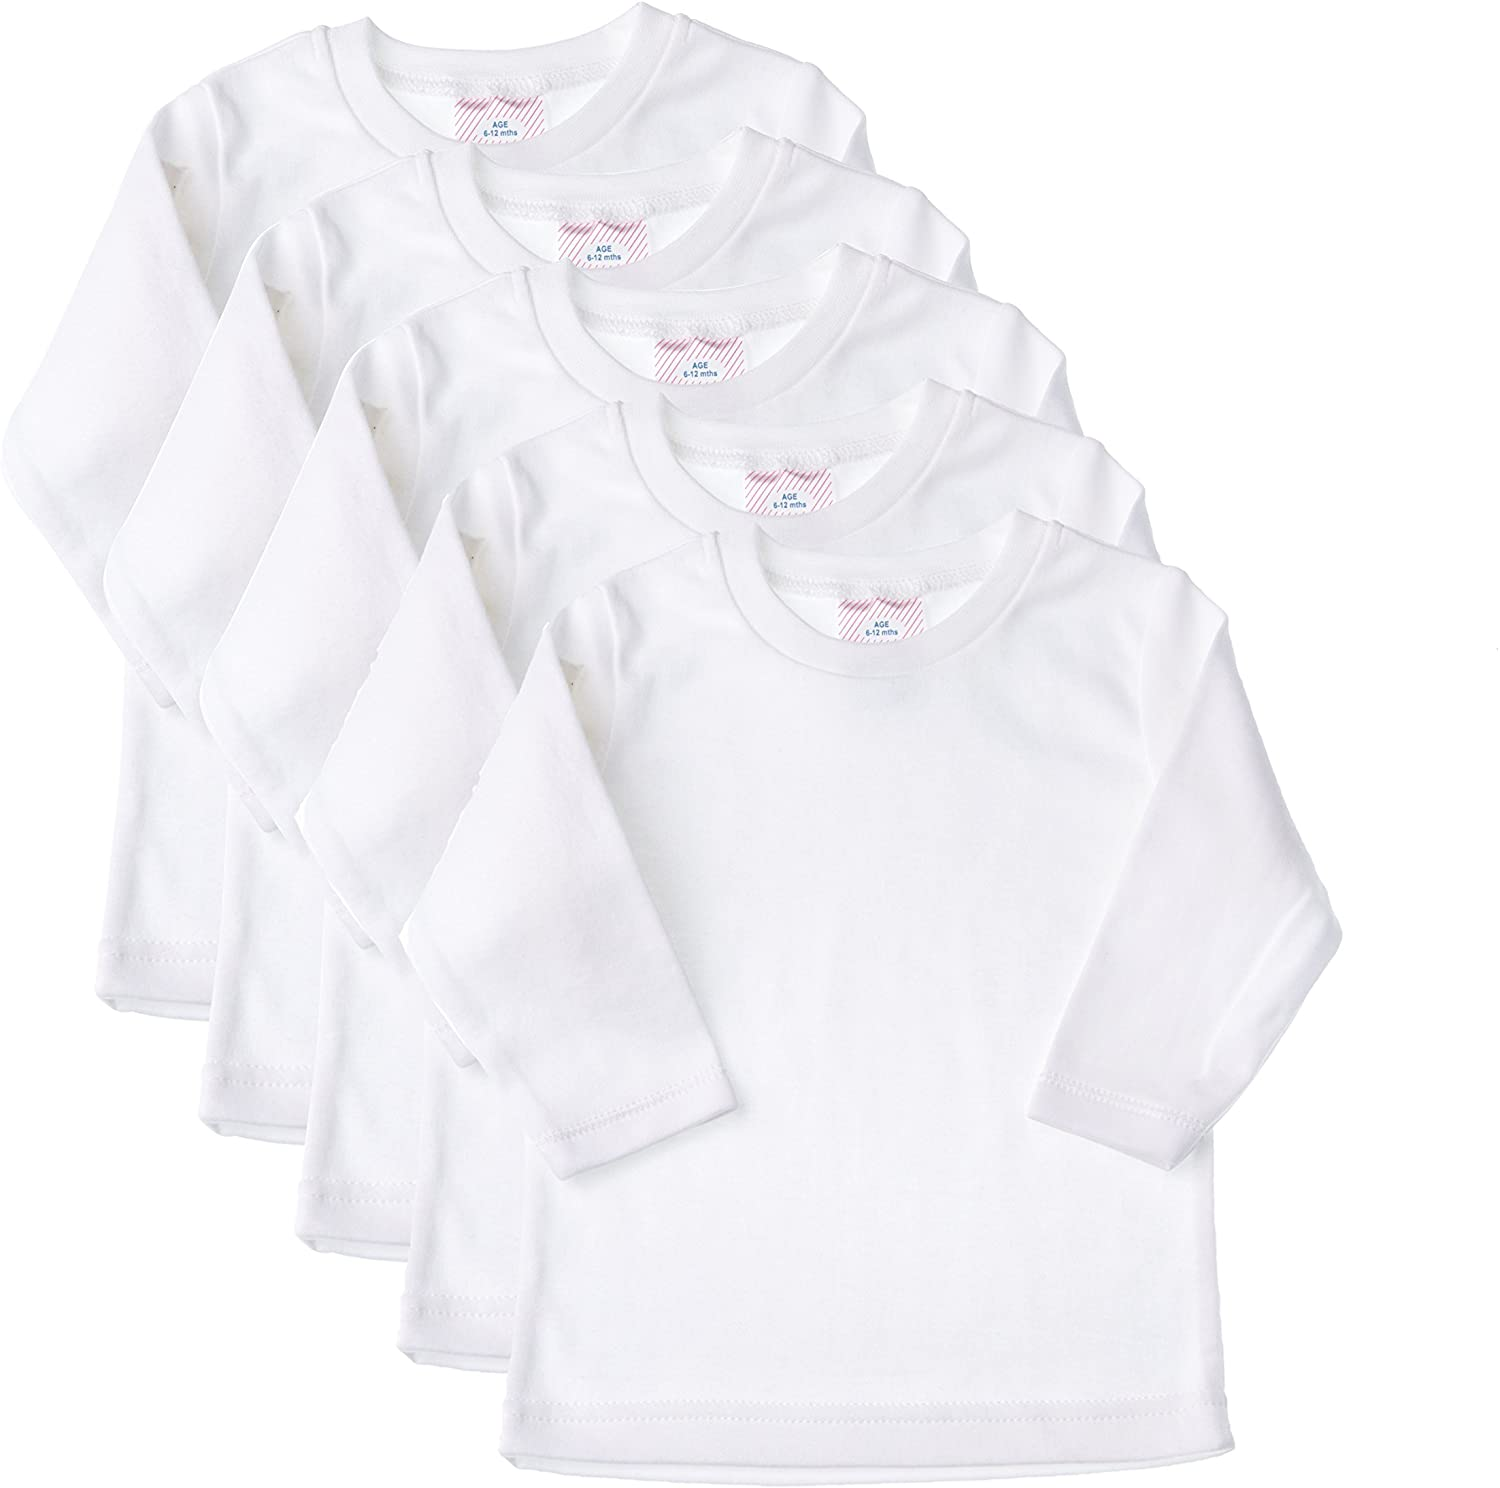 Baby Jay Long Sleeved Undershirt 5 Pack - White Unisex Baby and Toddler Soft Cotton Tee - Boys and Girls T Shirt